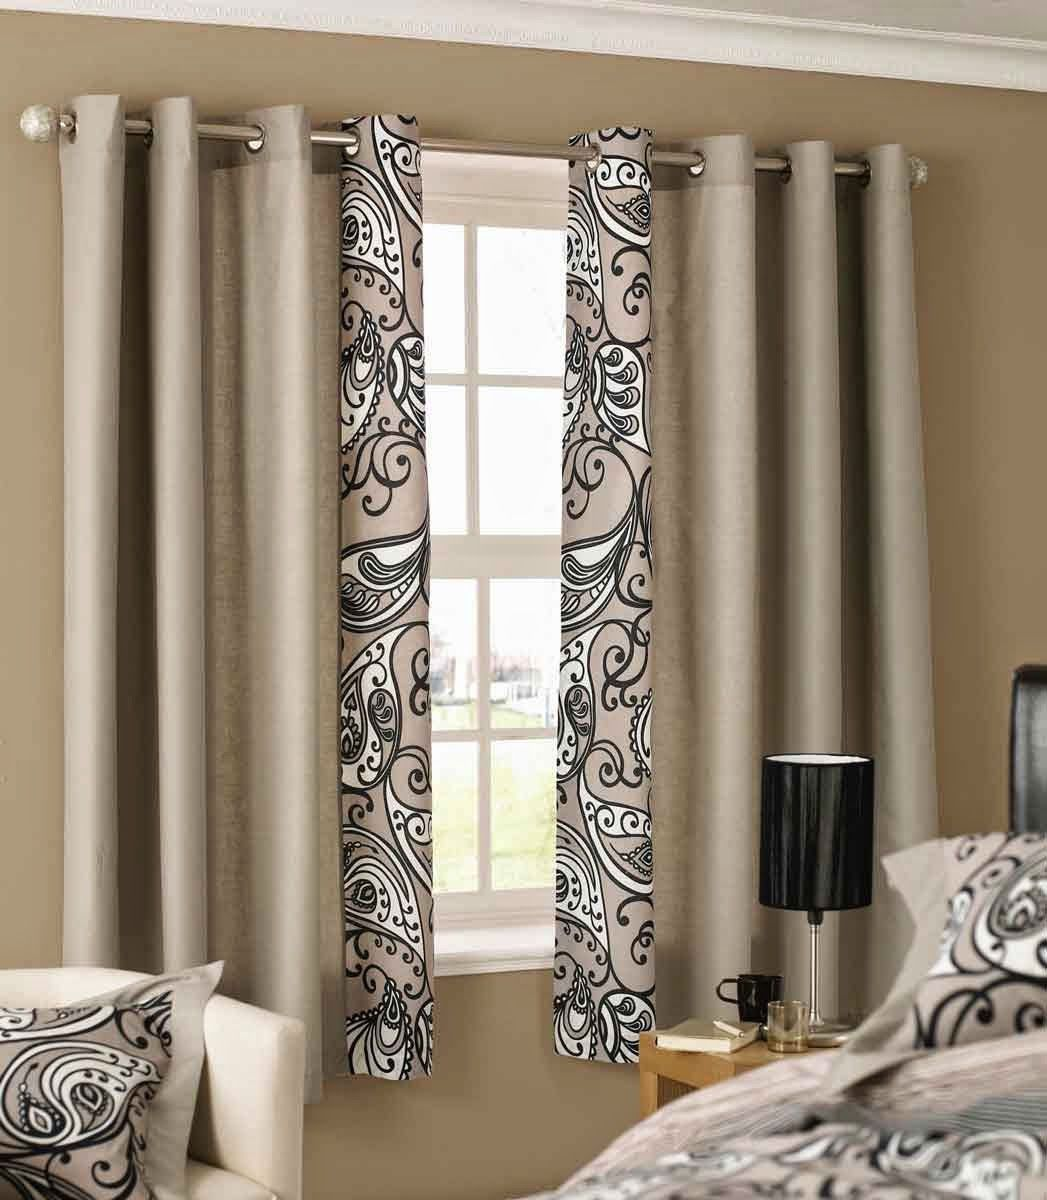 Curtain Ideas For Bedroom Closets Curtain Ideas For Bedroom